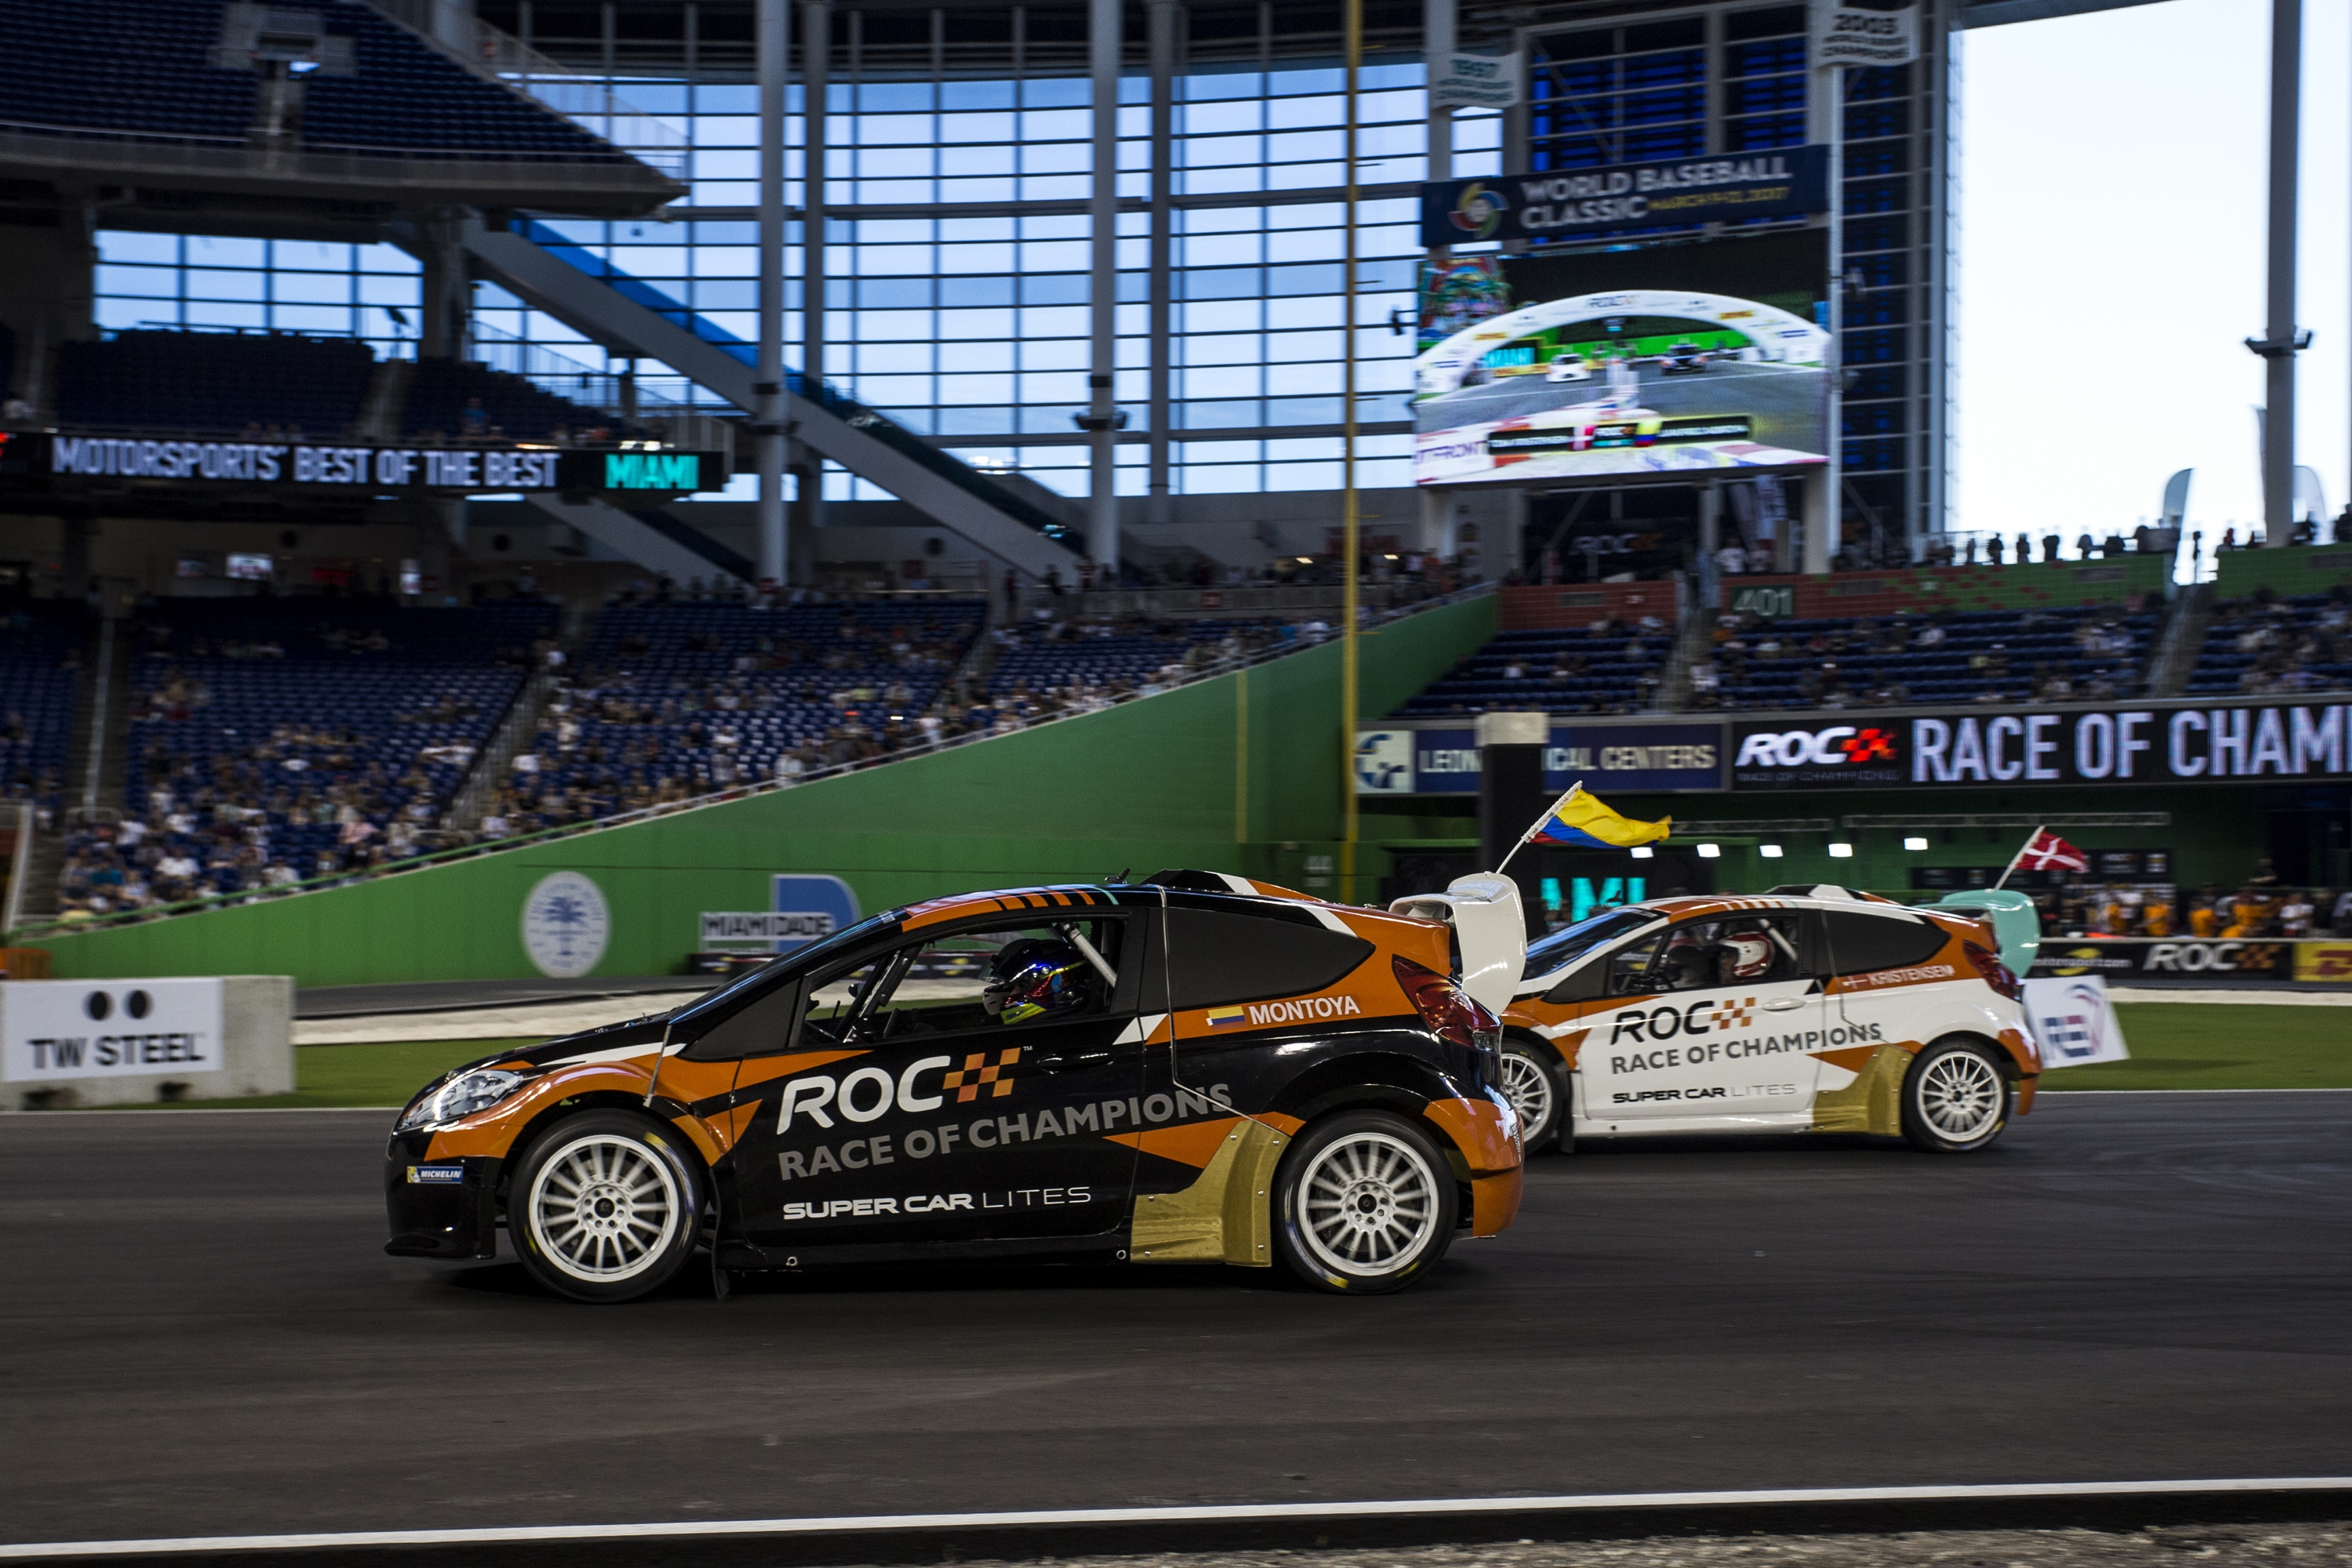 juan-pablo_montoya_col_races_tom_kristensen_dnk_driving_therx_supercar_lite_during_the_race_of_champions_on_saturday_21_january_2017_at_marlins_park_miami_florida_usa_560.JPG